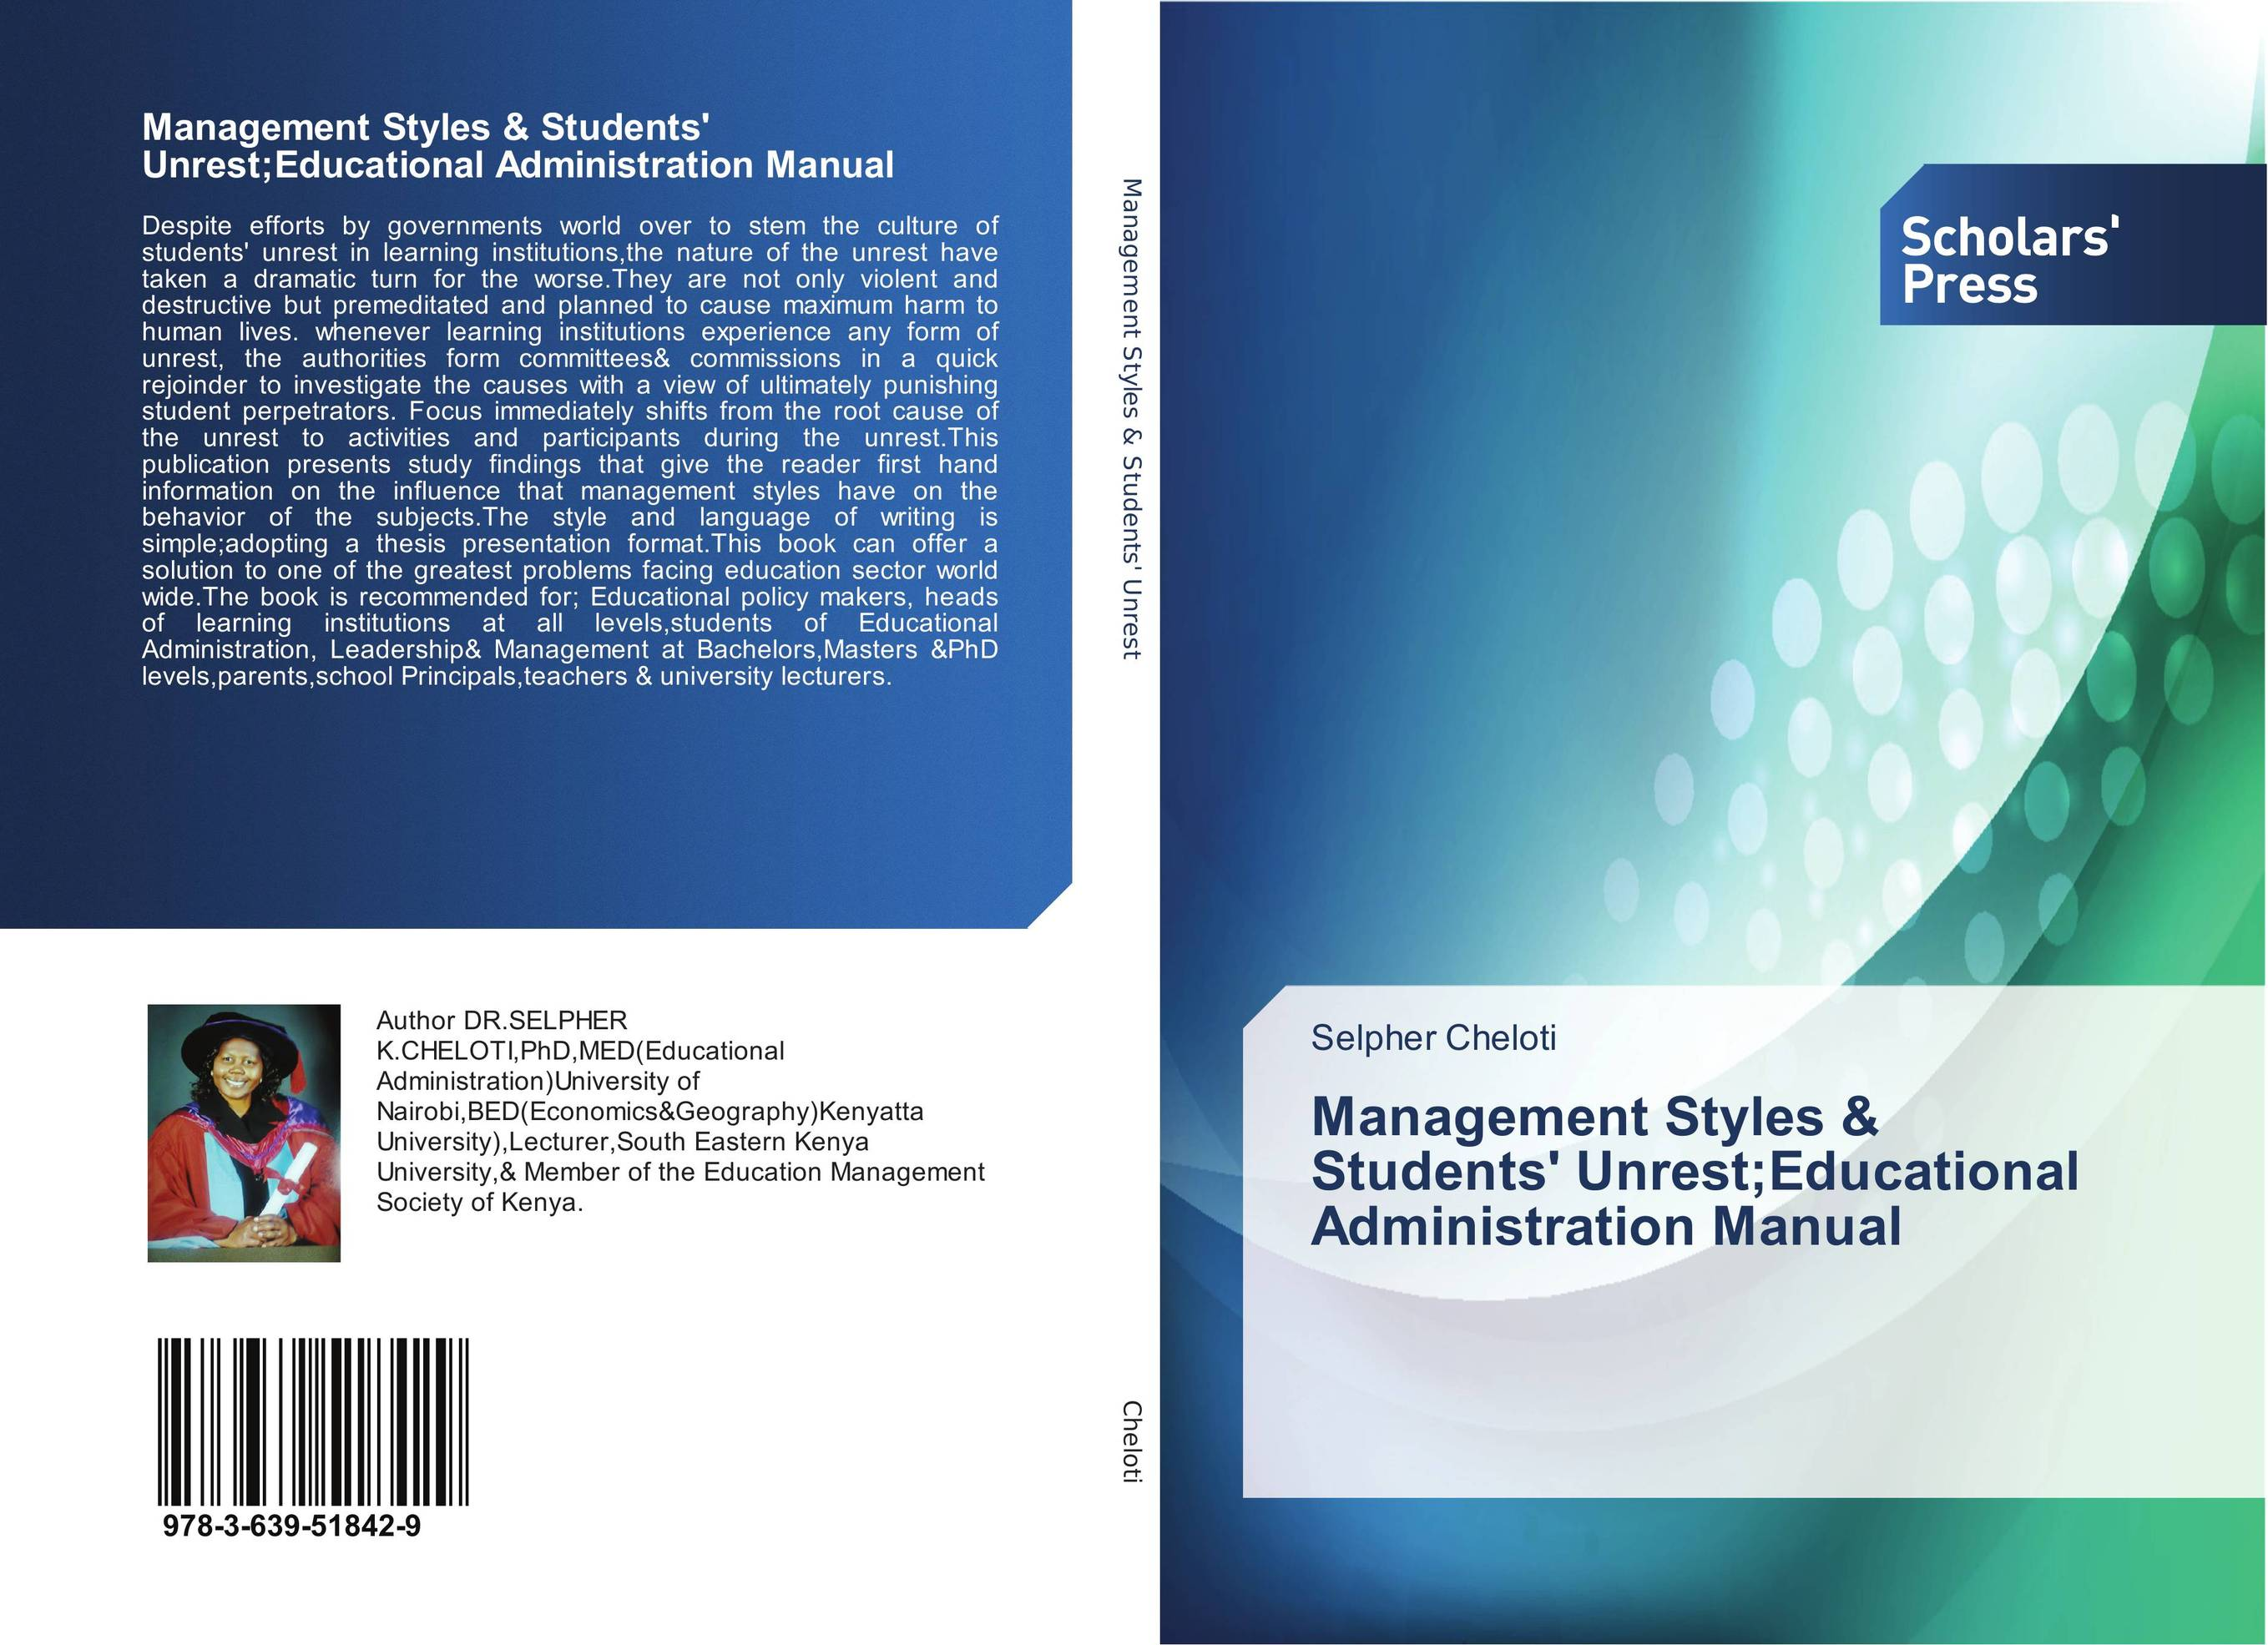 Management Styles & Students' Unrest;Educational Administration Manual the teeth with root canal students to practice root canal preparation and filling actually